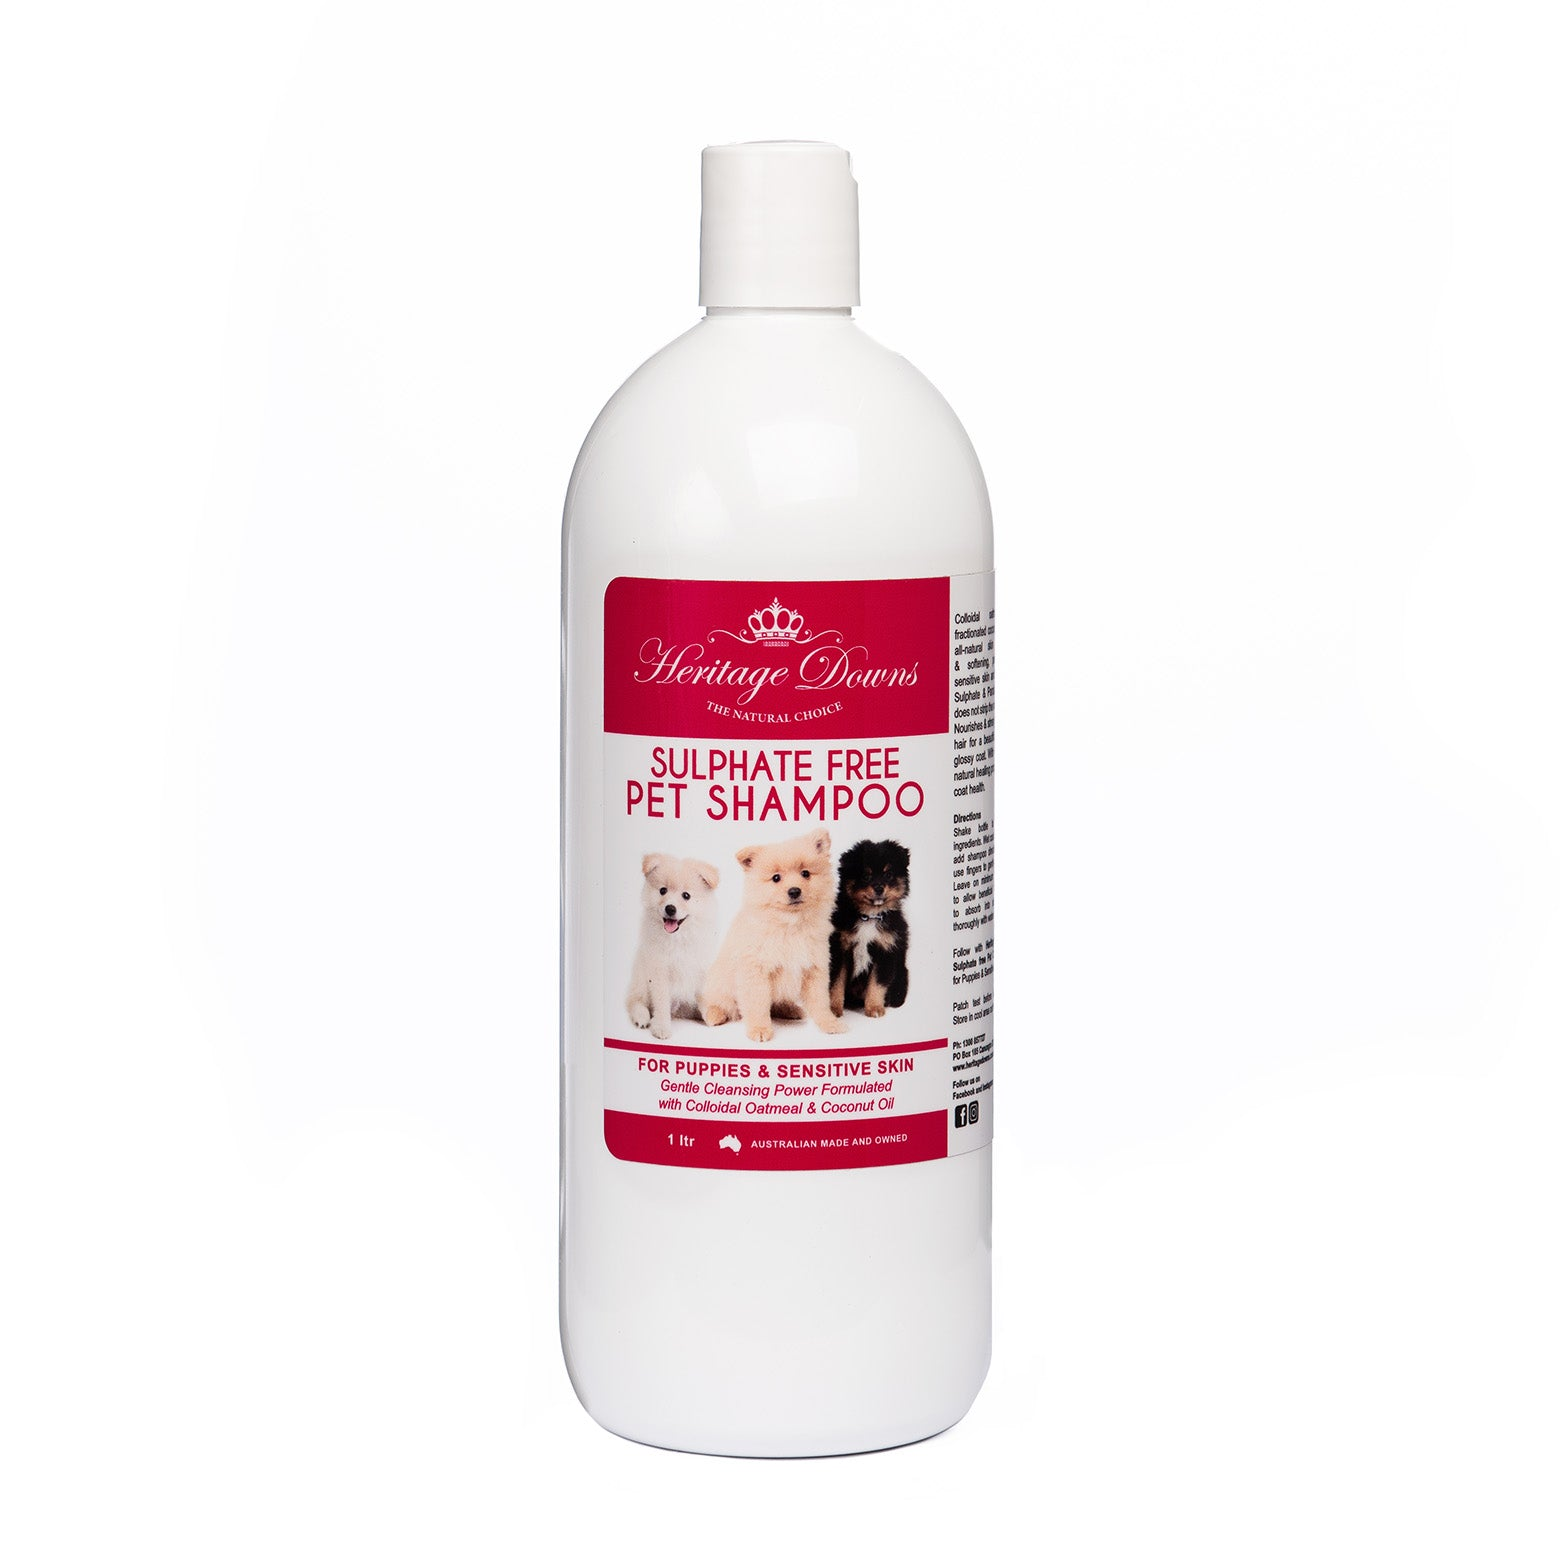 Oatmeal & Coconut Pet Shampoo